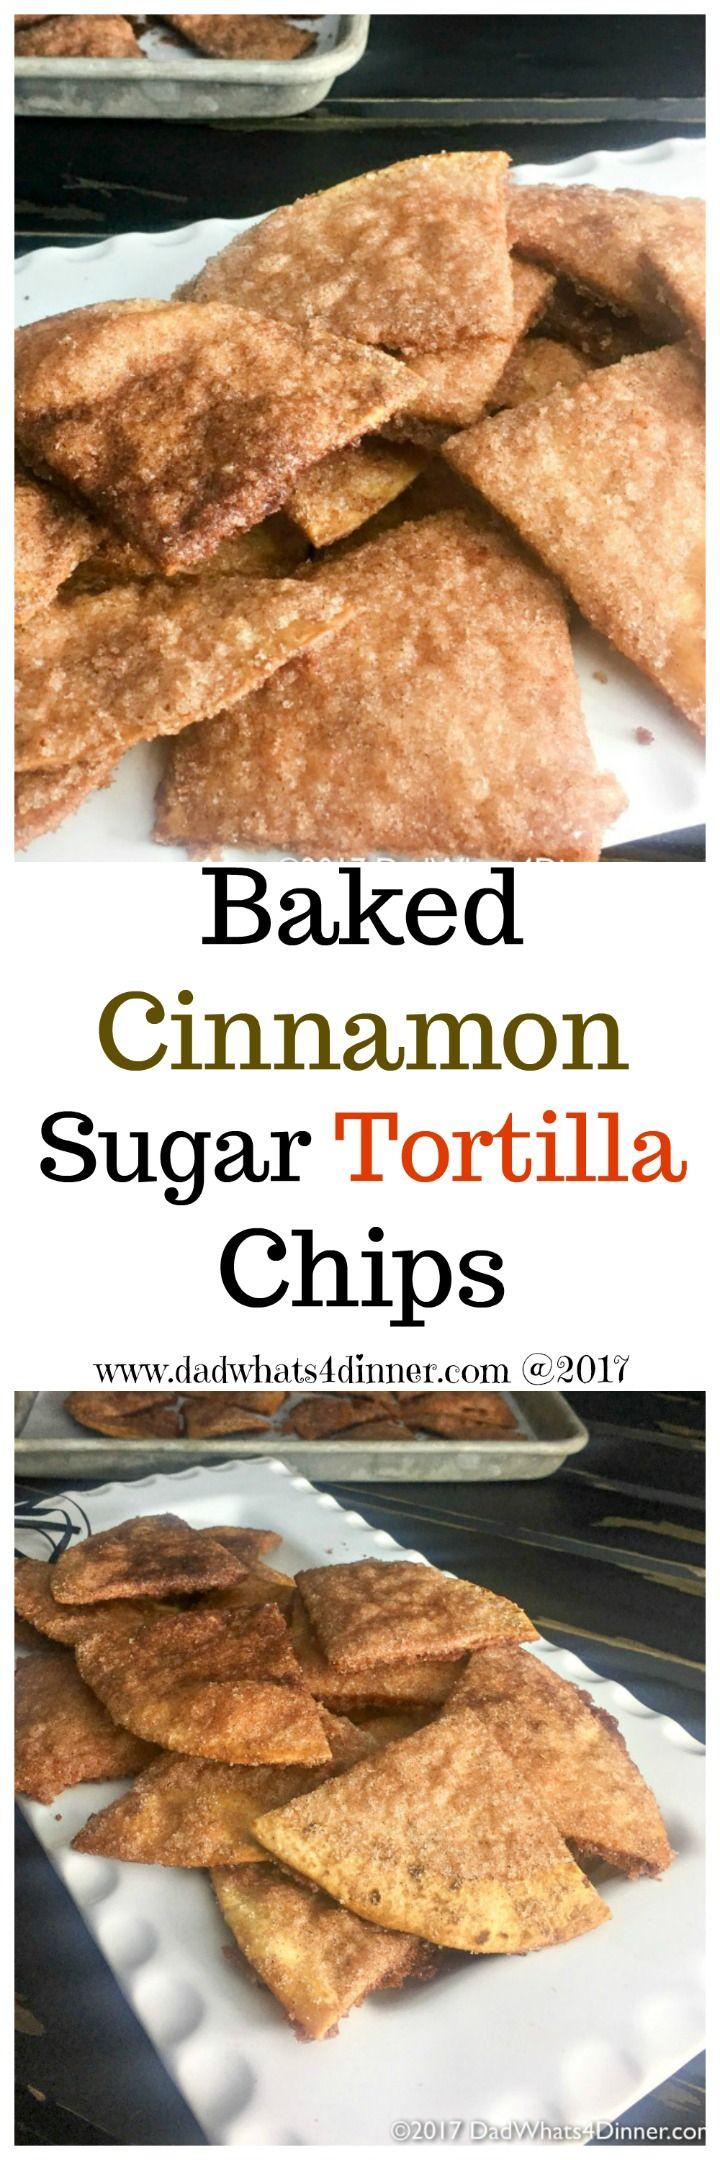 Baked Cinnamon Sugar Tortilla Chips is a healthier version of the Mexican restaurant classic. A great recipe to get your kids started in the kitchen.  via @dadwhats4dinner